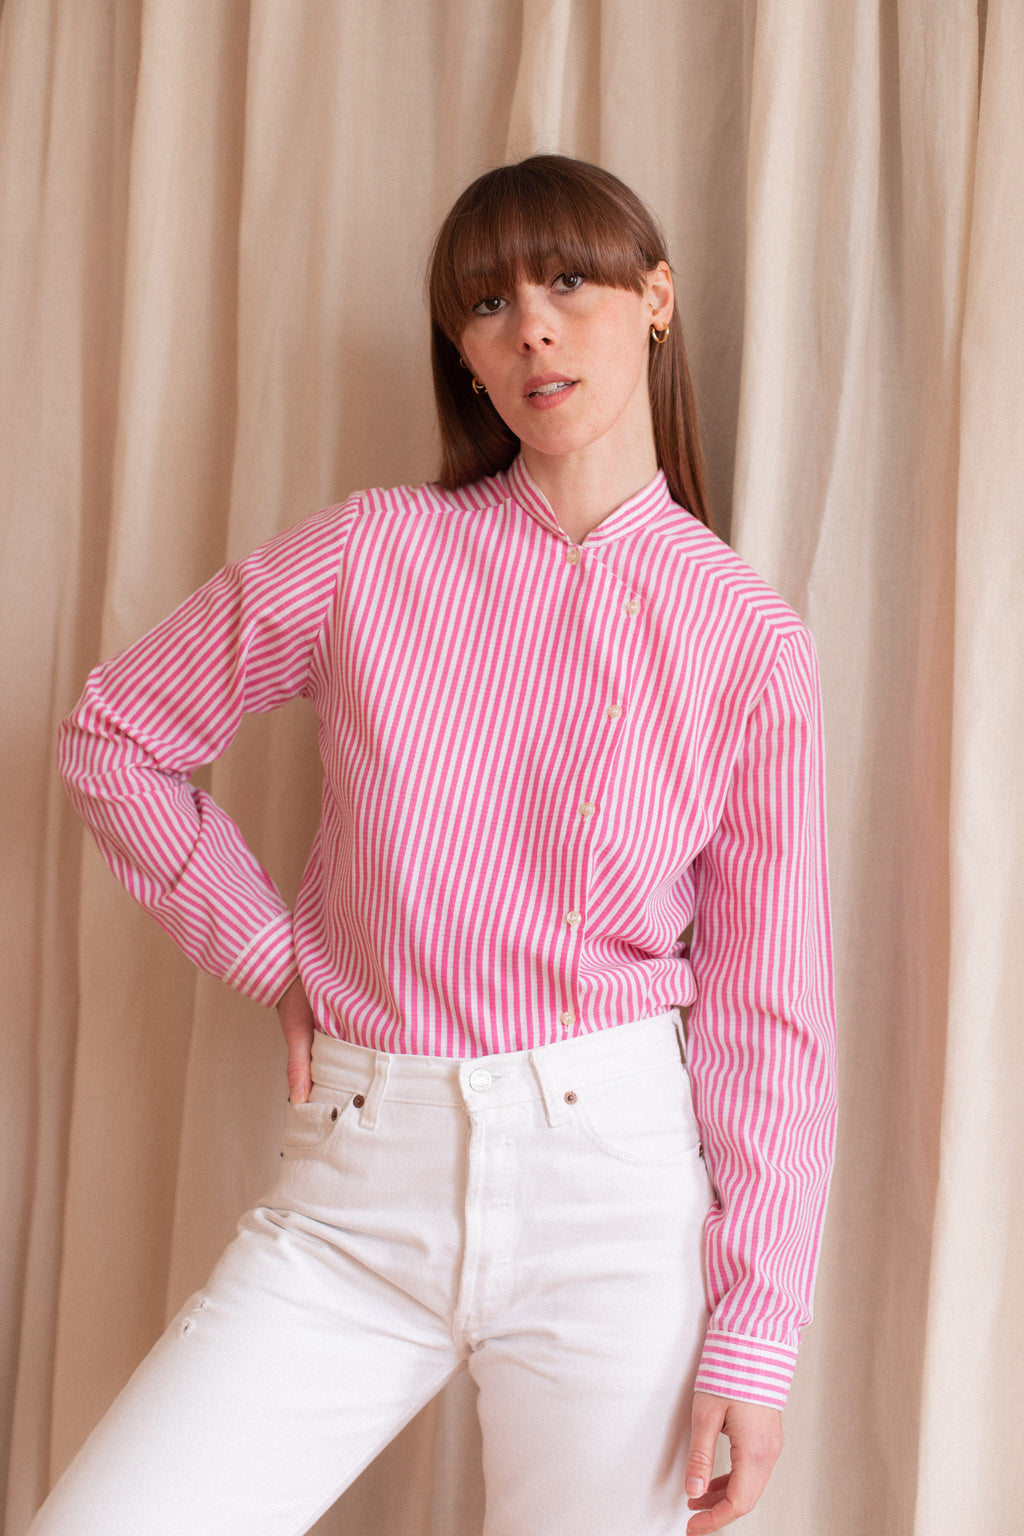 Anita is Vintage 60s Pink & White Stripe Blouse